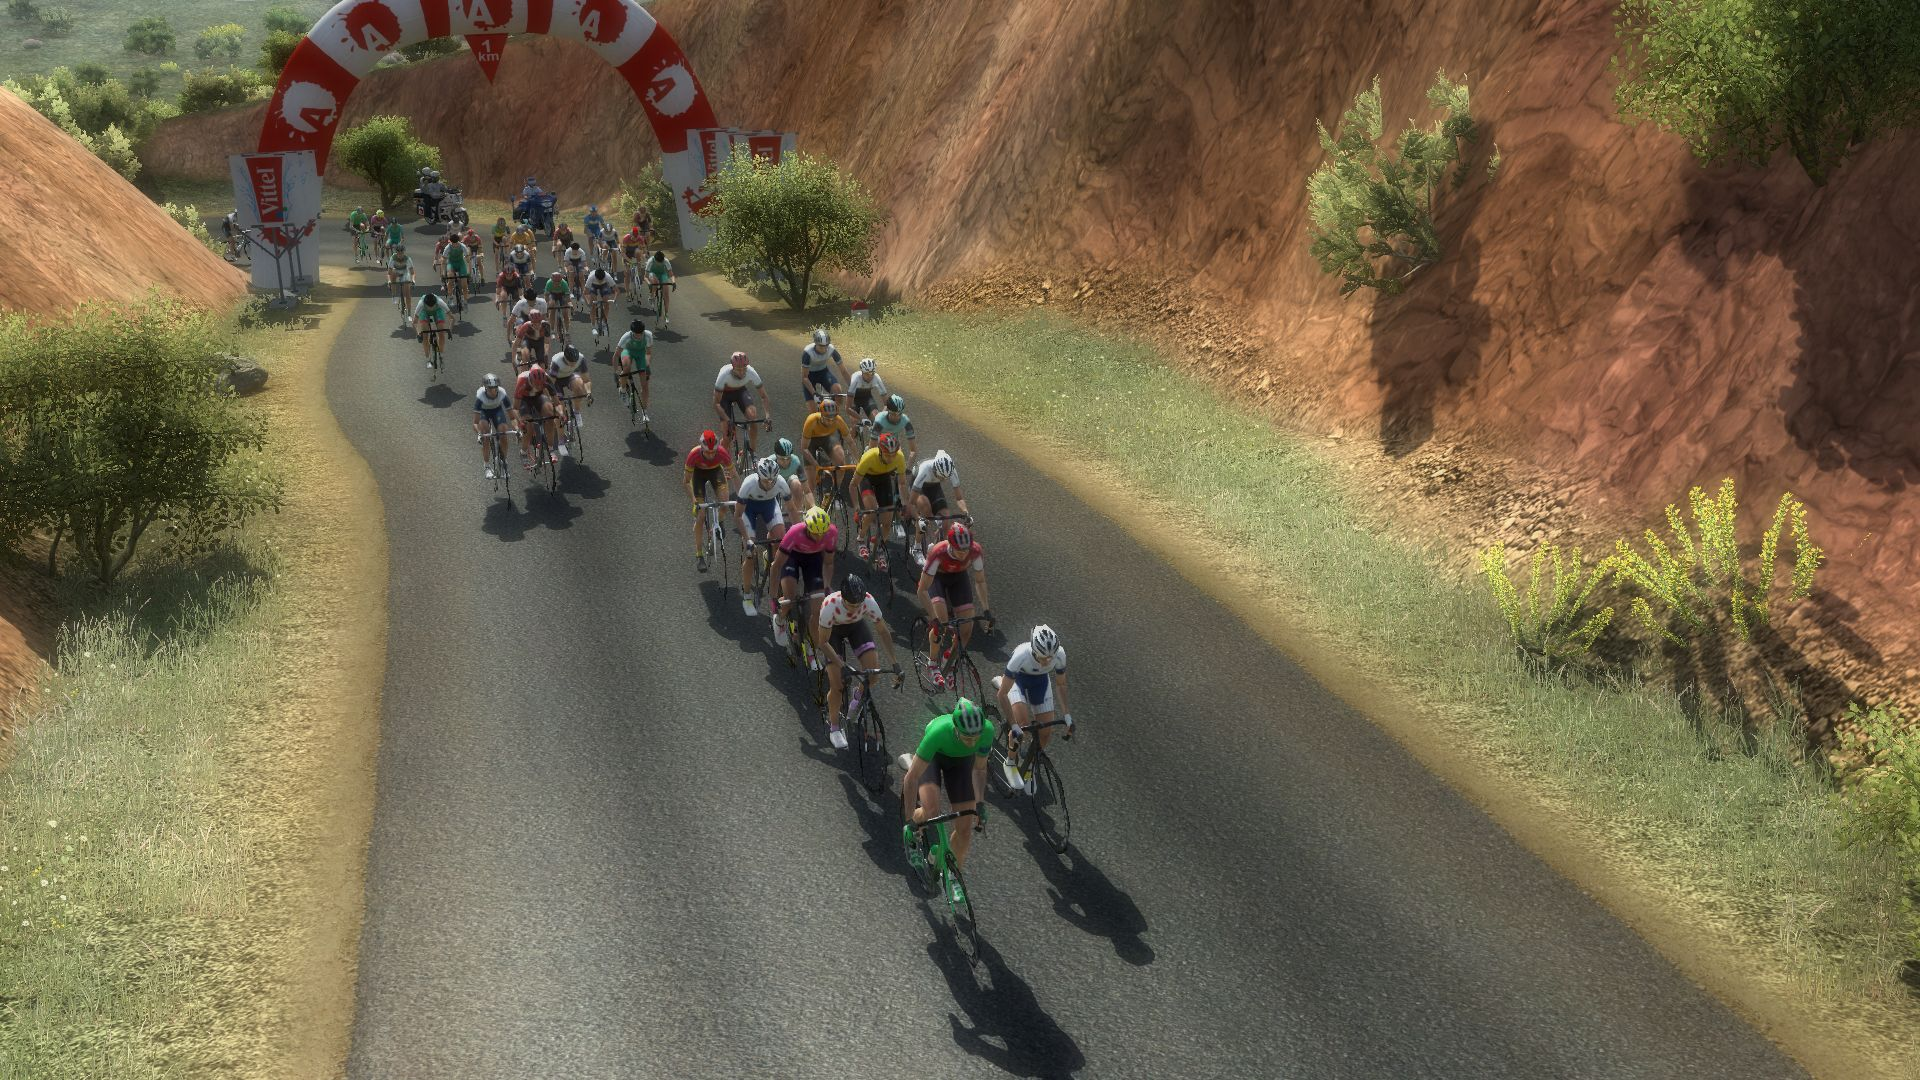 pcmdaily.com/images/mg/2019/Races/C2HC/Eritrea/TOES6%2027.jpg